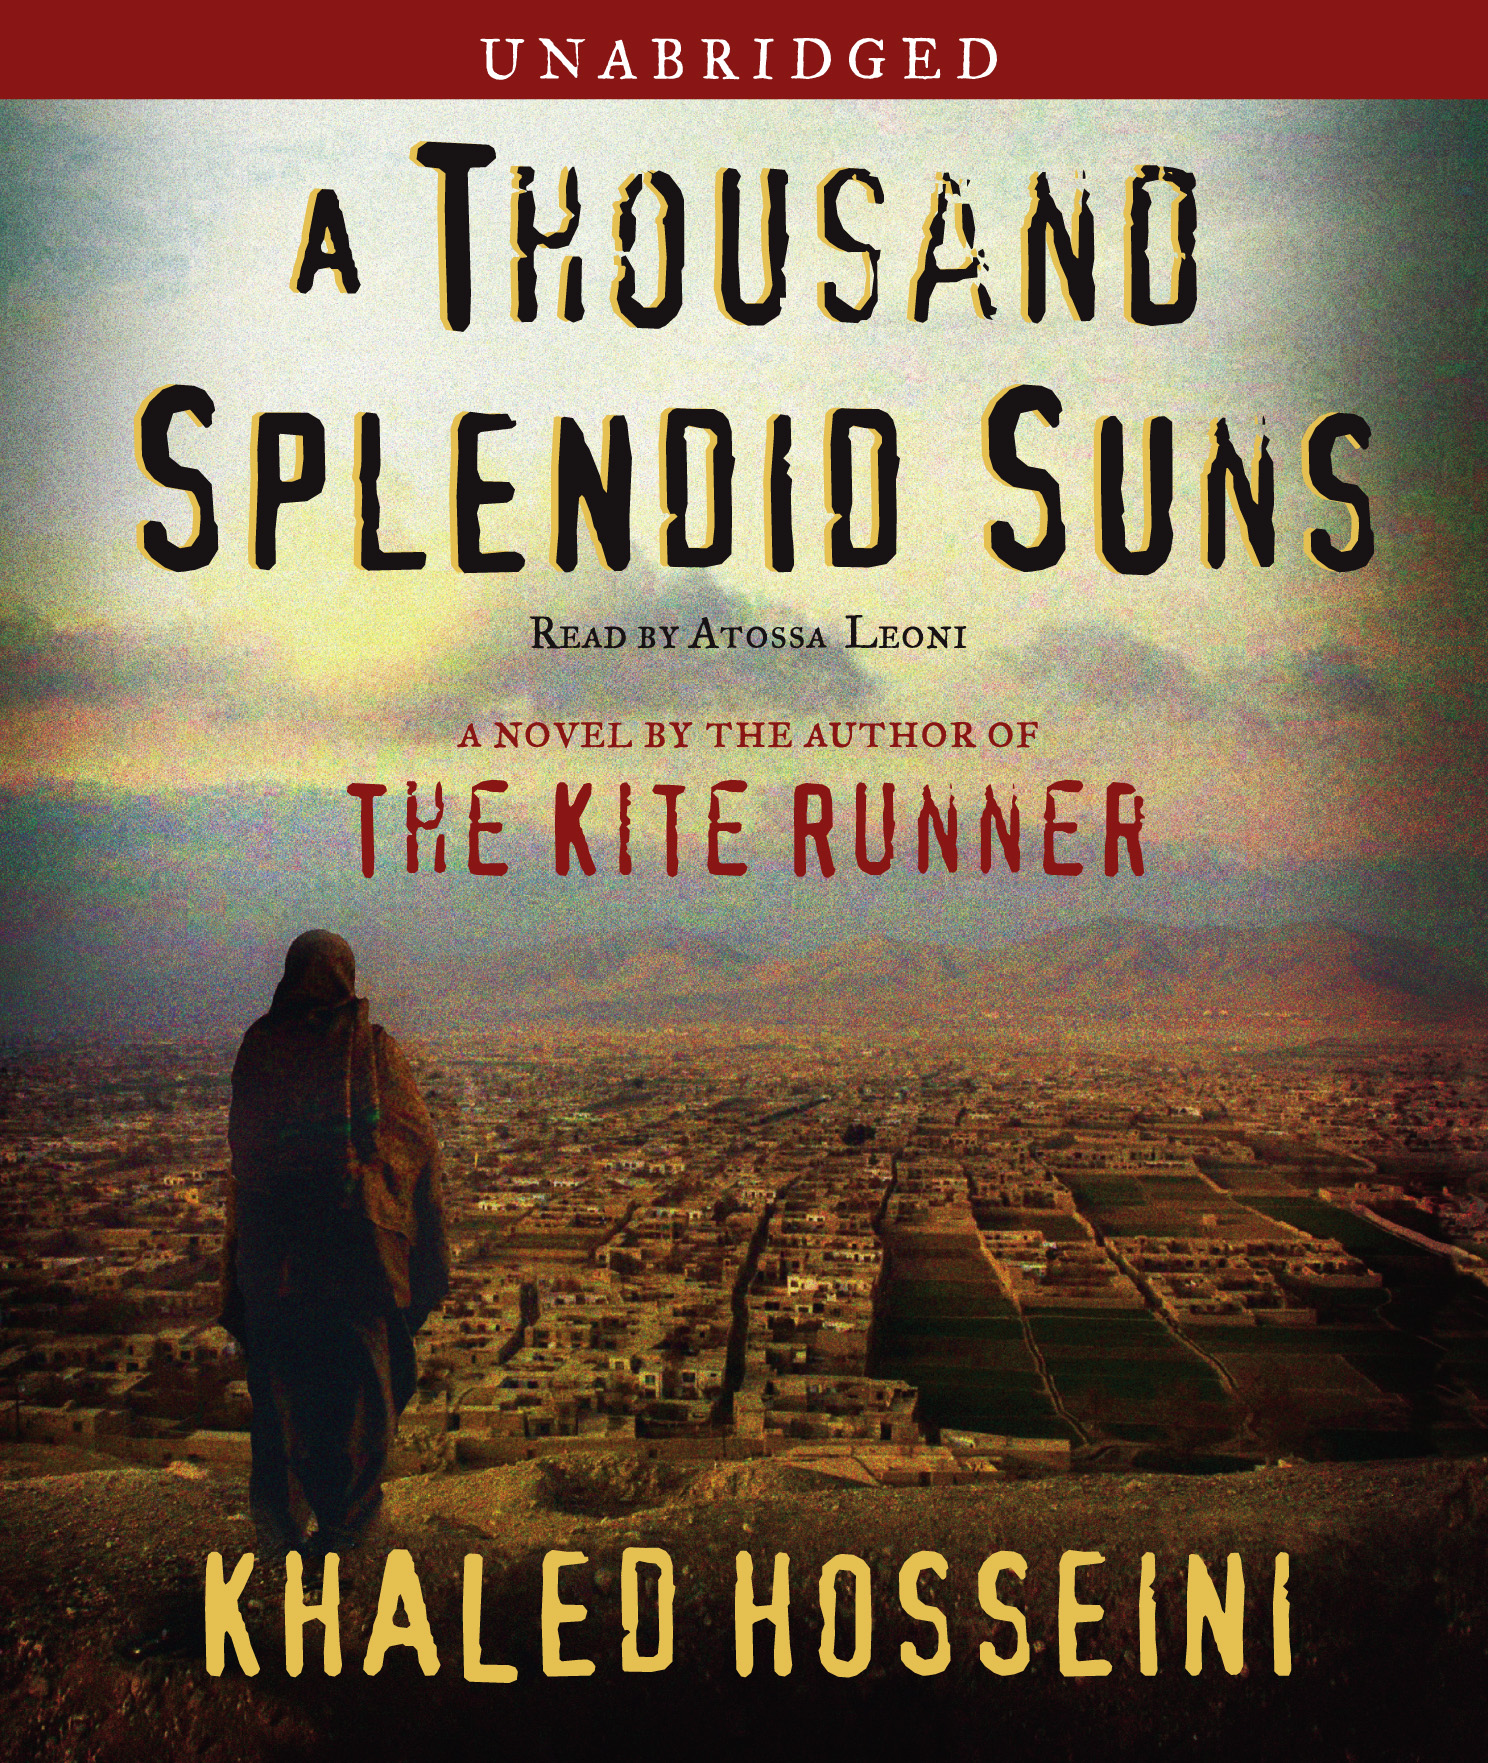 a thousand splendid suns book Khaled hosseini khaled hosseini writes with power and surety, producing another best seller with a thousand splendid suns this is his second novel, following close upon the heels of the kite runner.